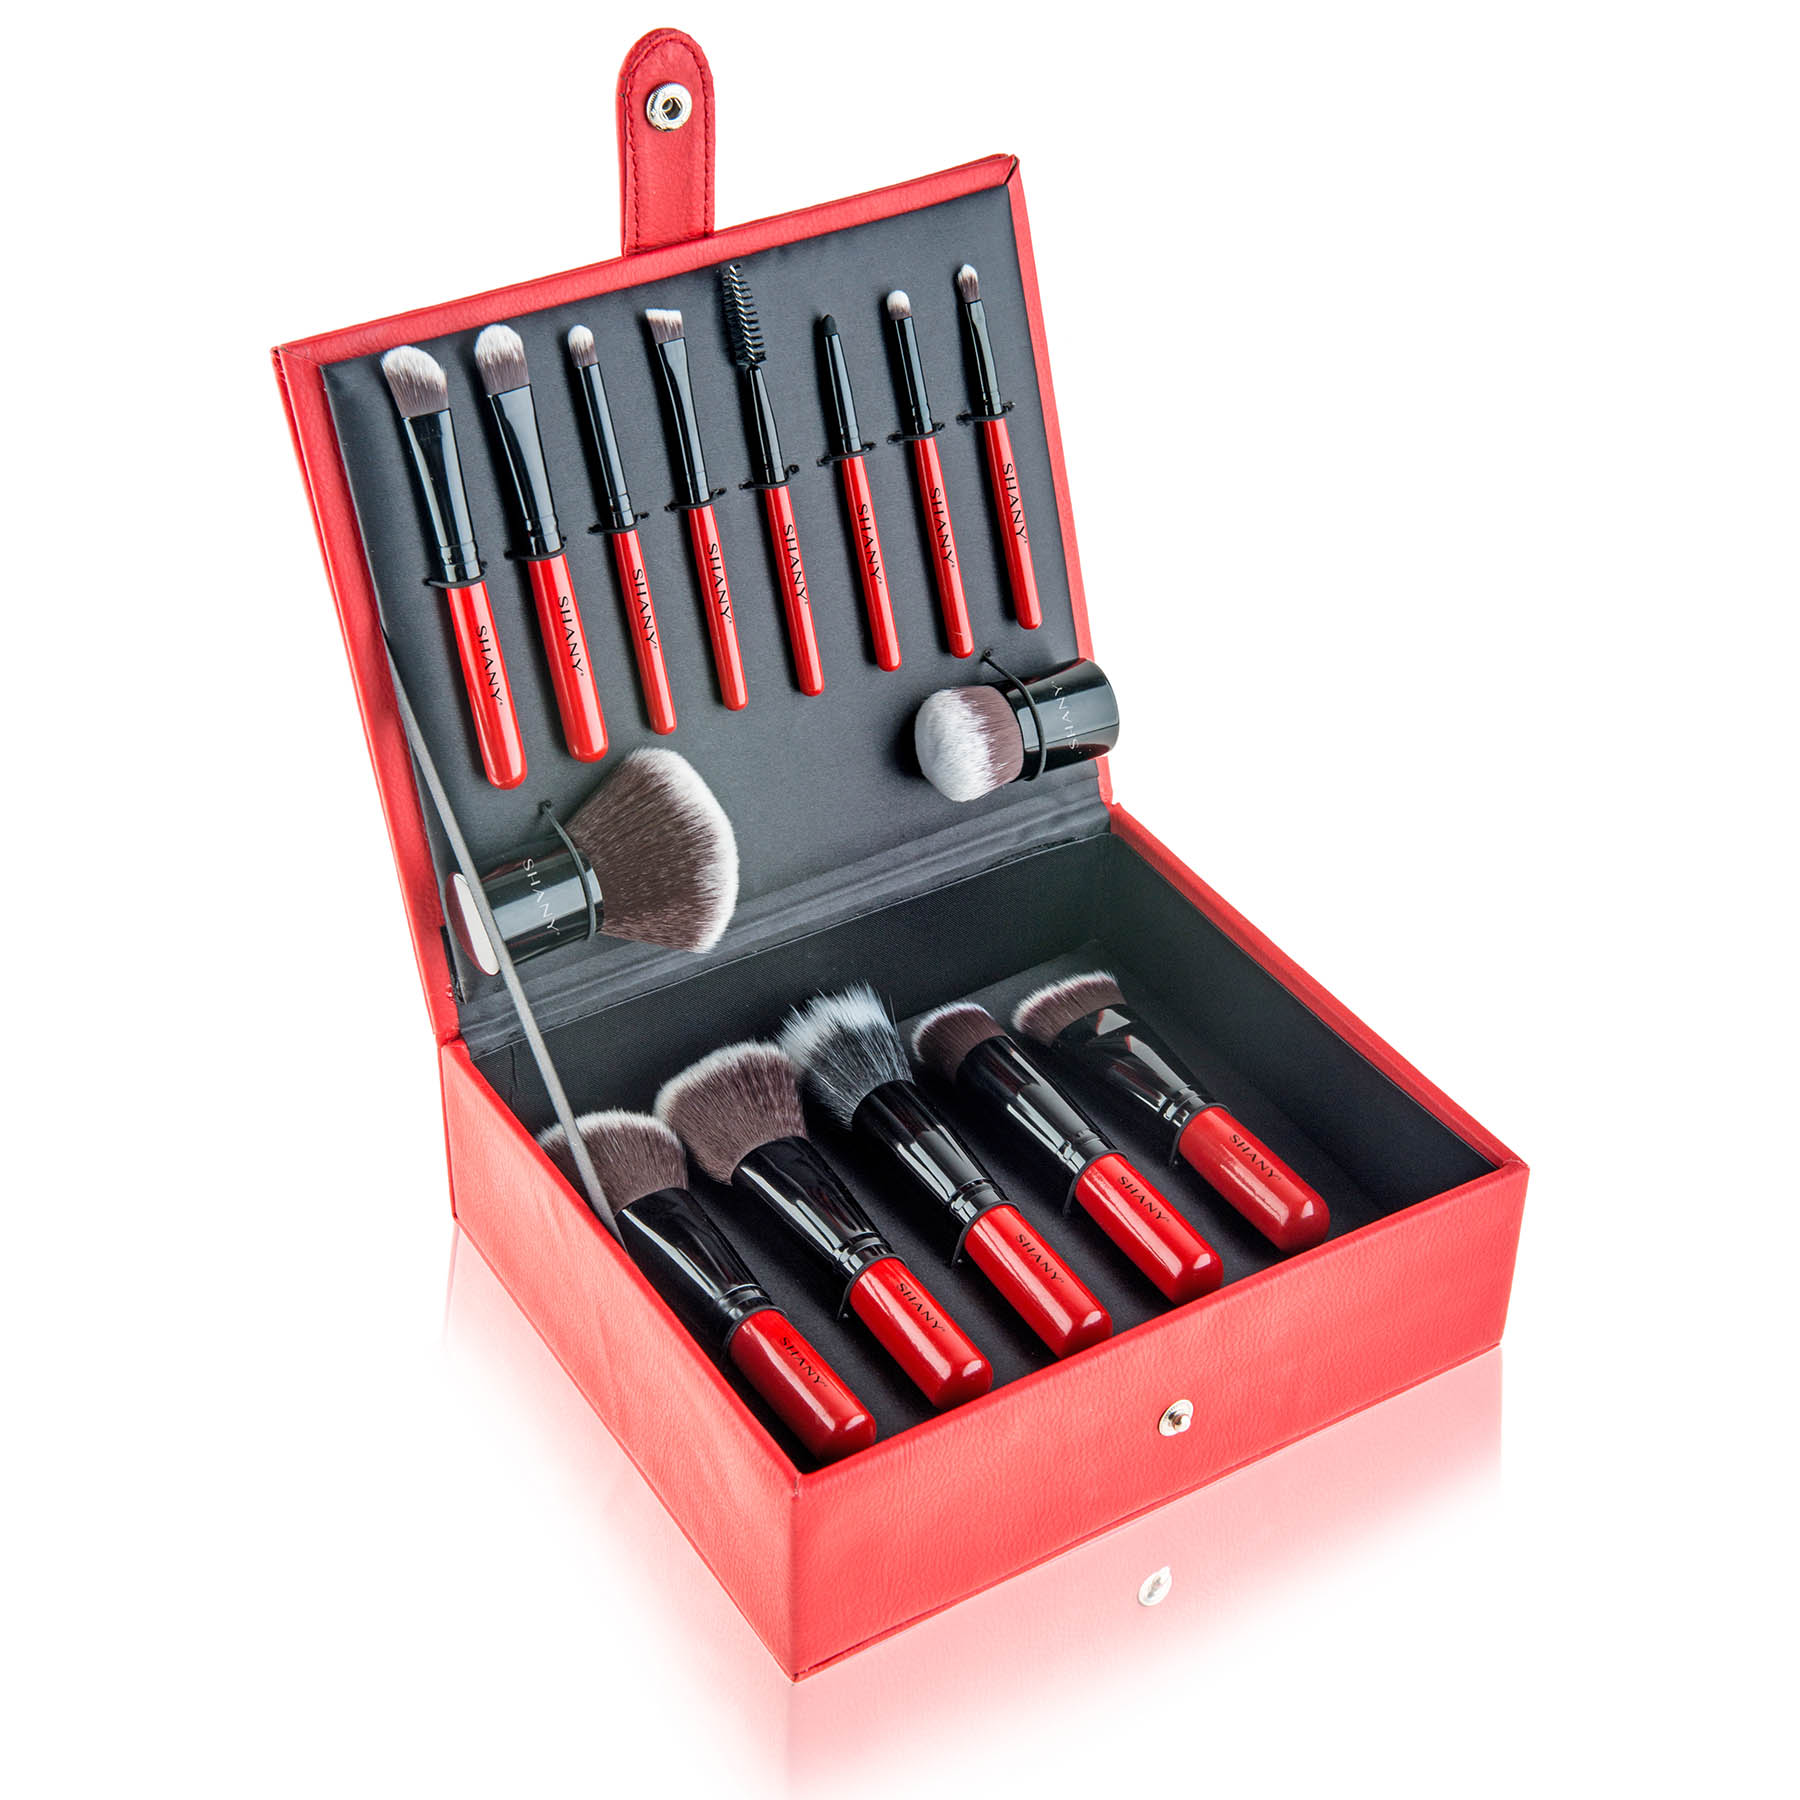 SHANY Vanity Vox- 15 Pc Premium Cosmetics Brush Set with Stylish Storage Box and Stand